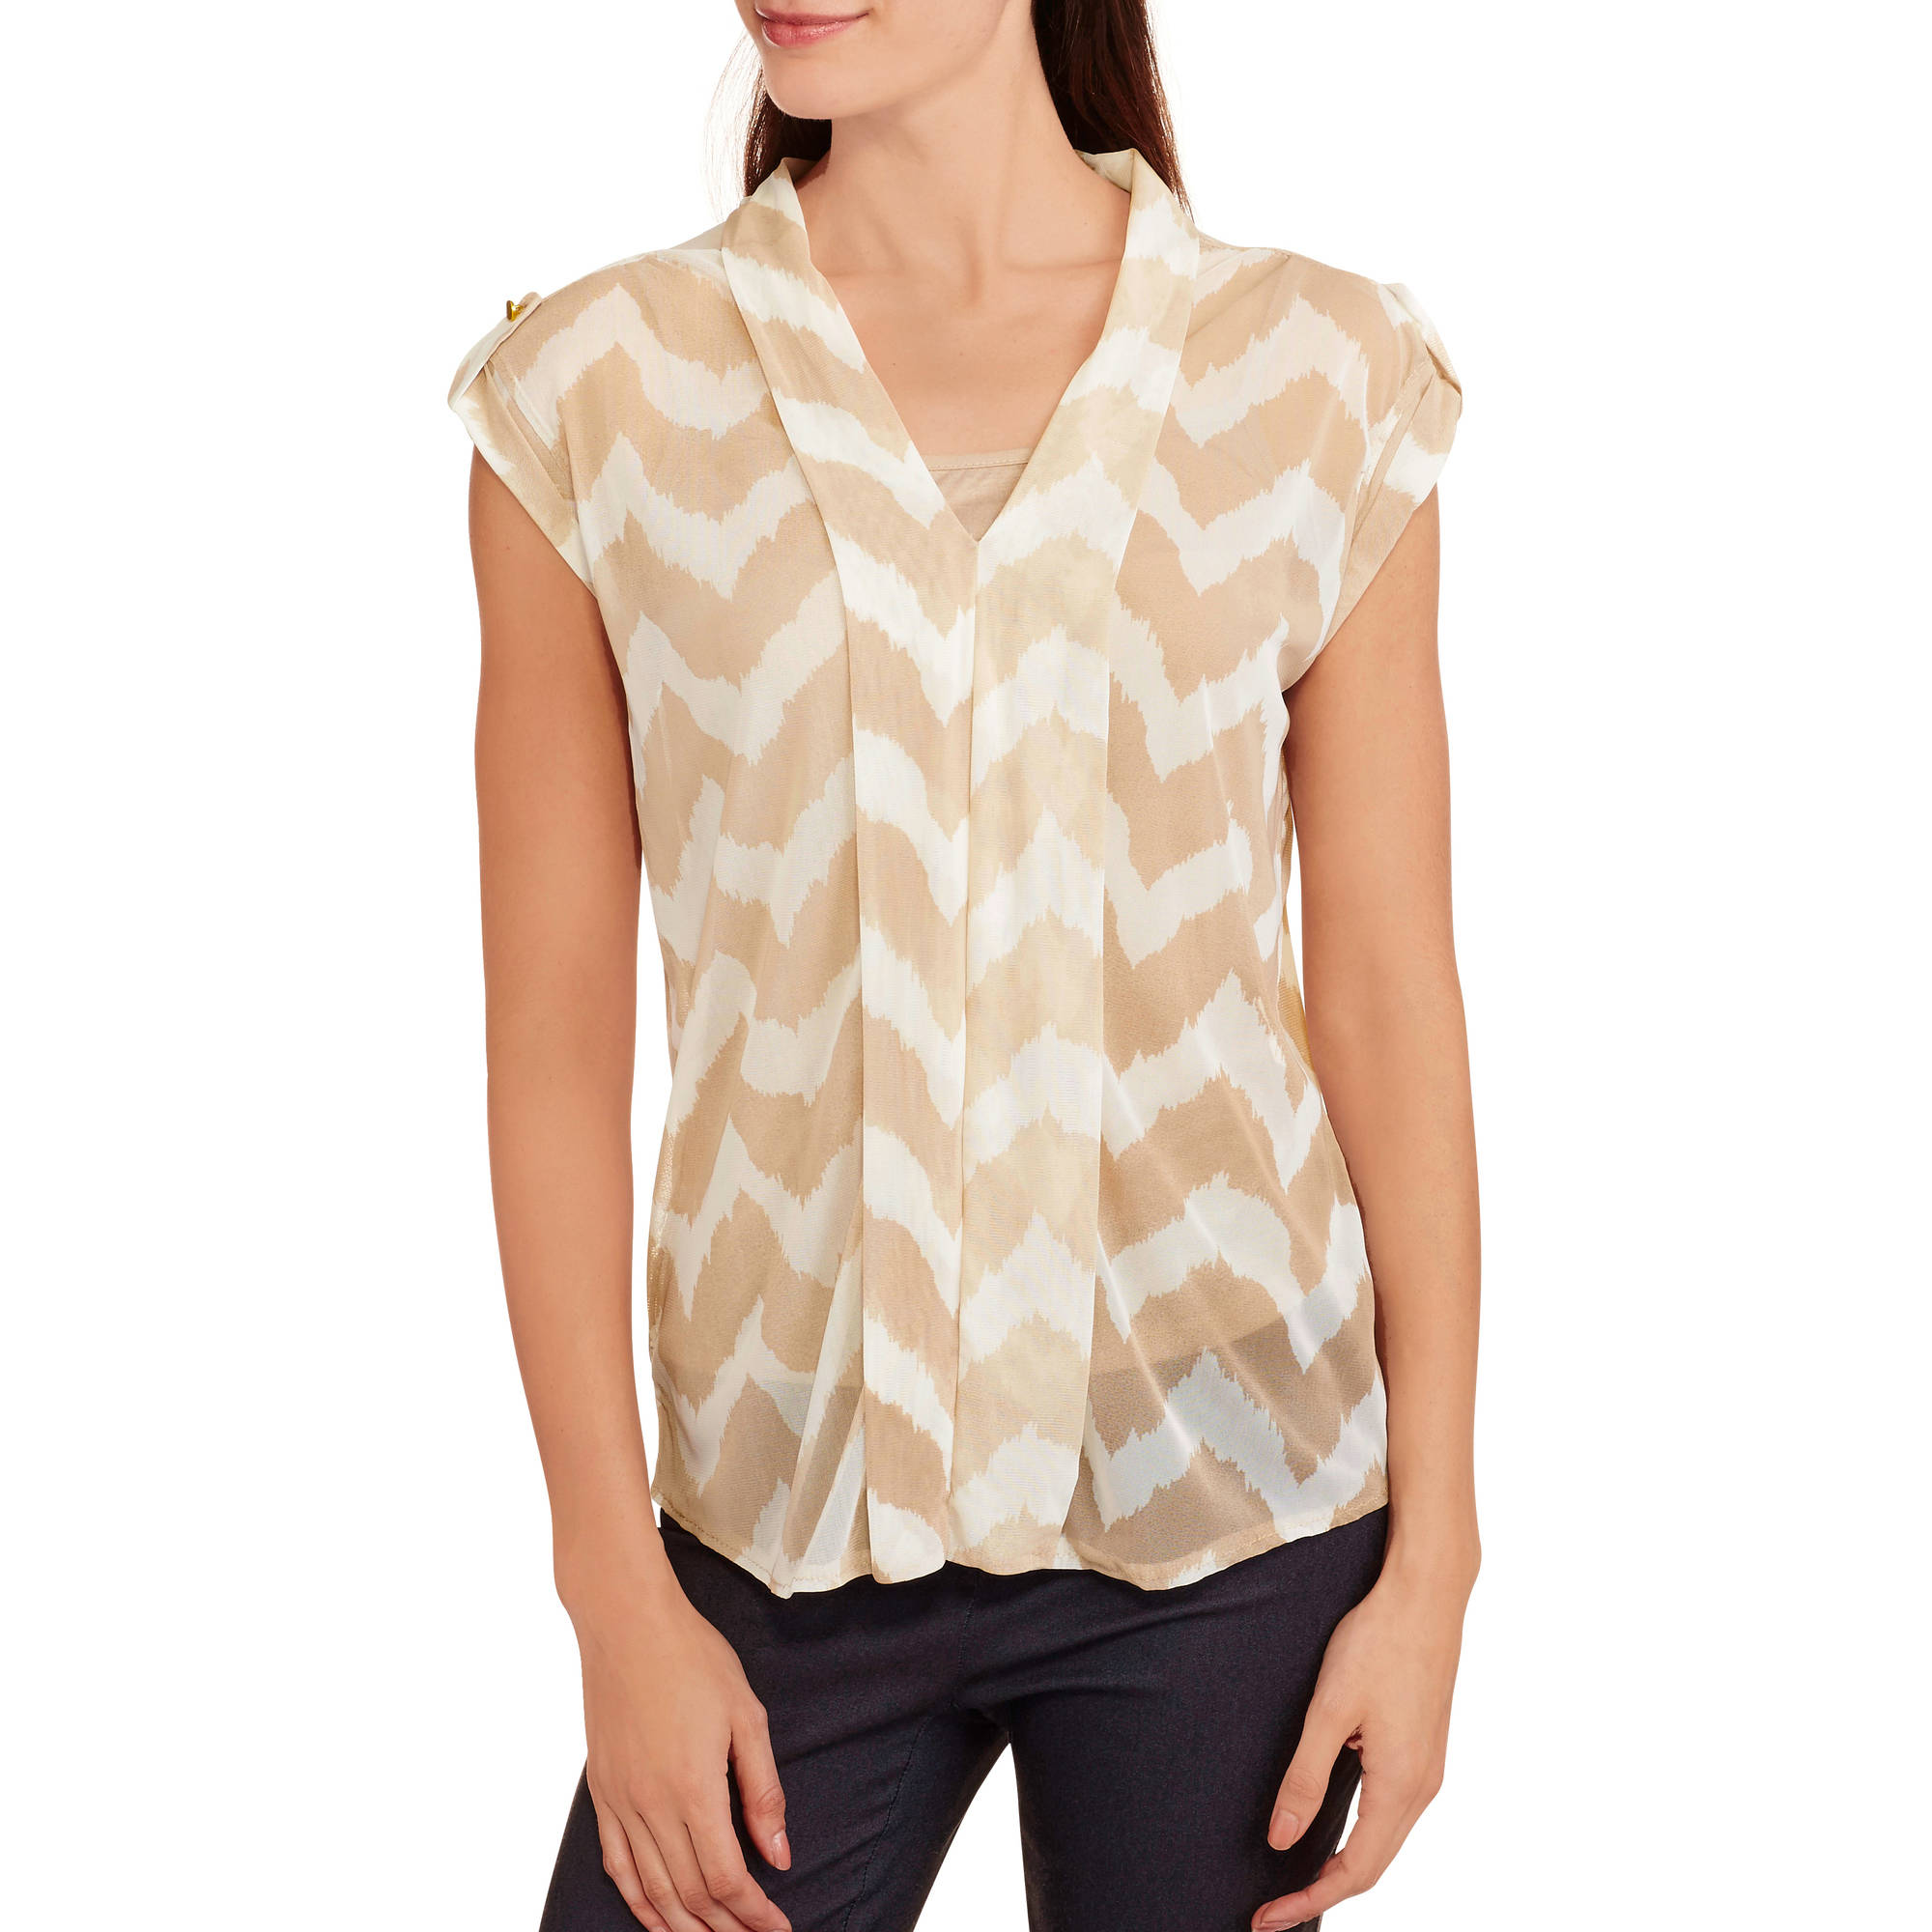 French Laundry Women's Sheer Chevron Sleeveless Top With Built-In Cami